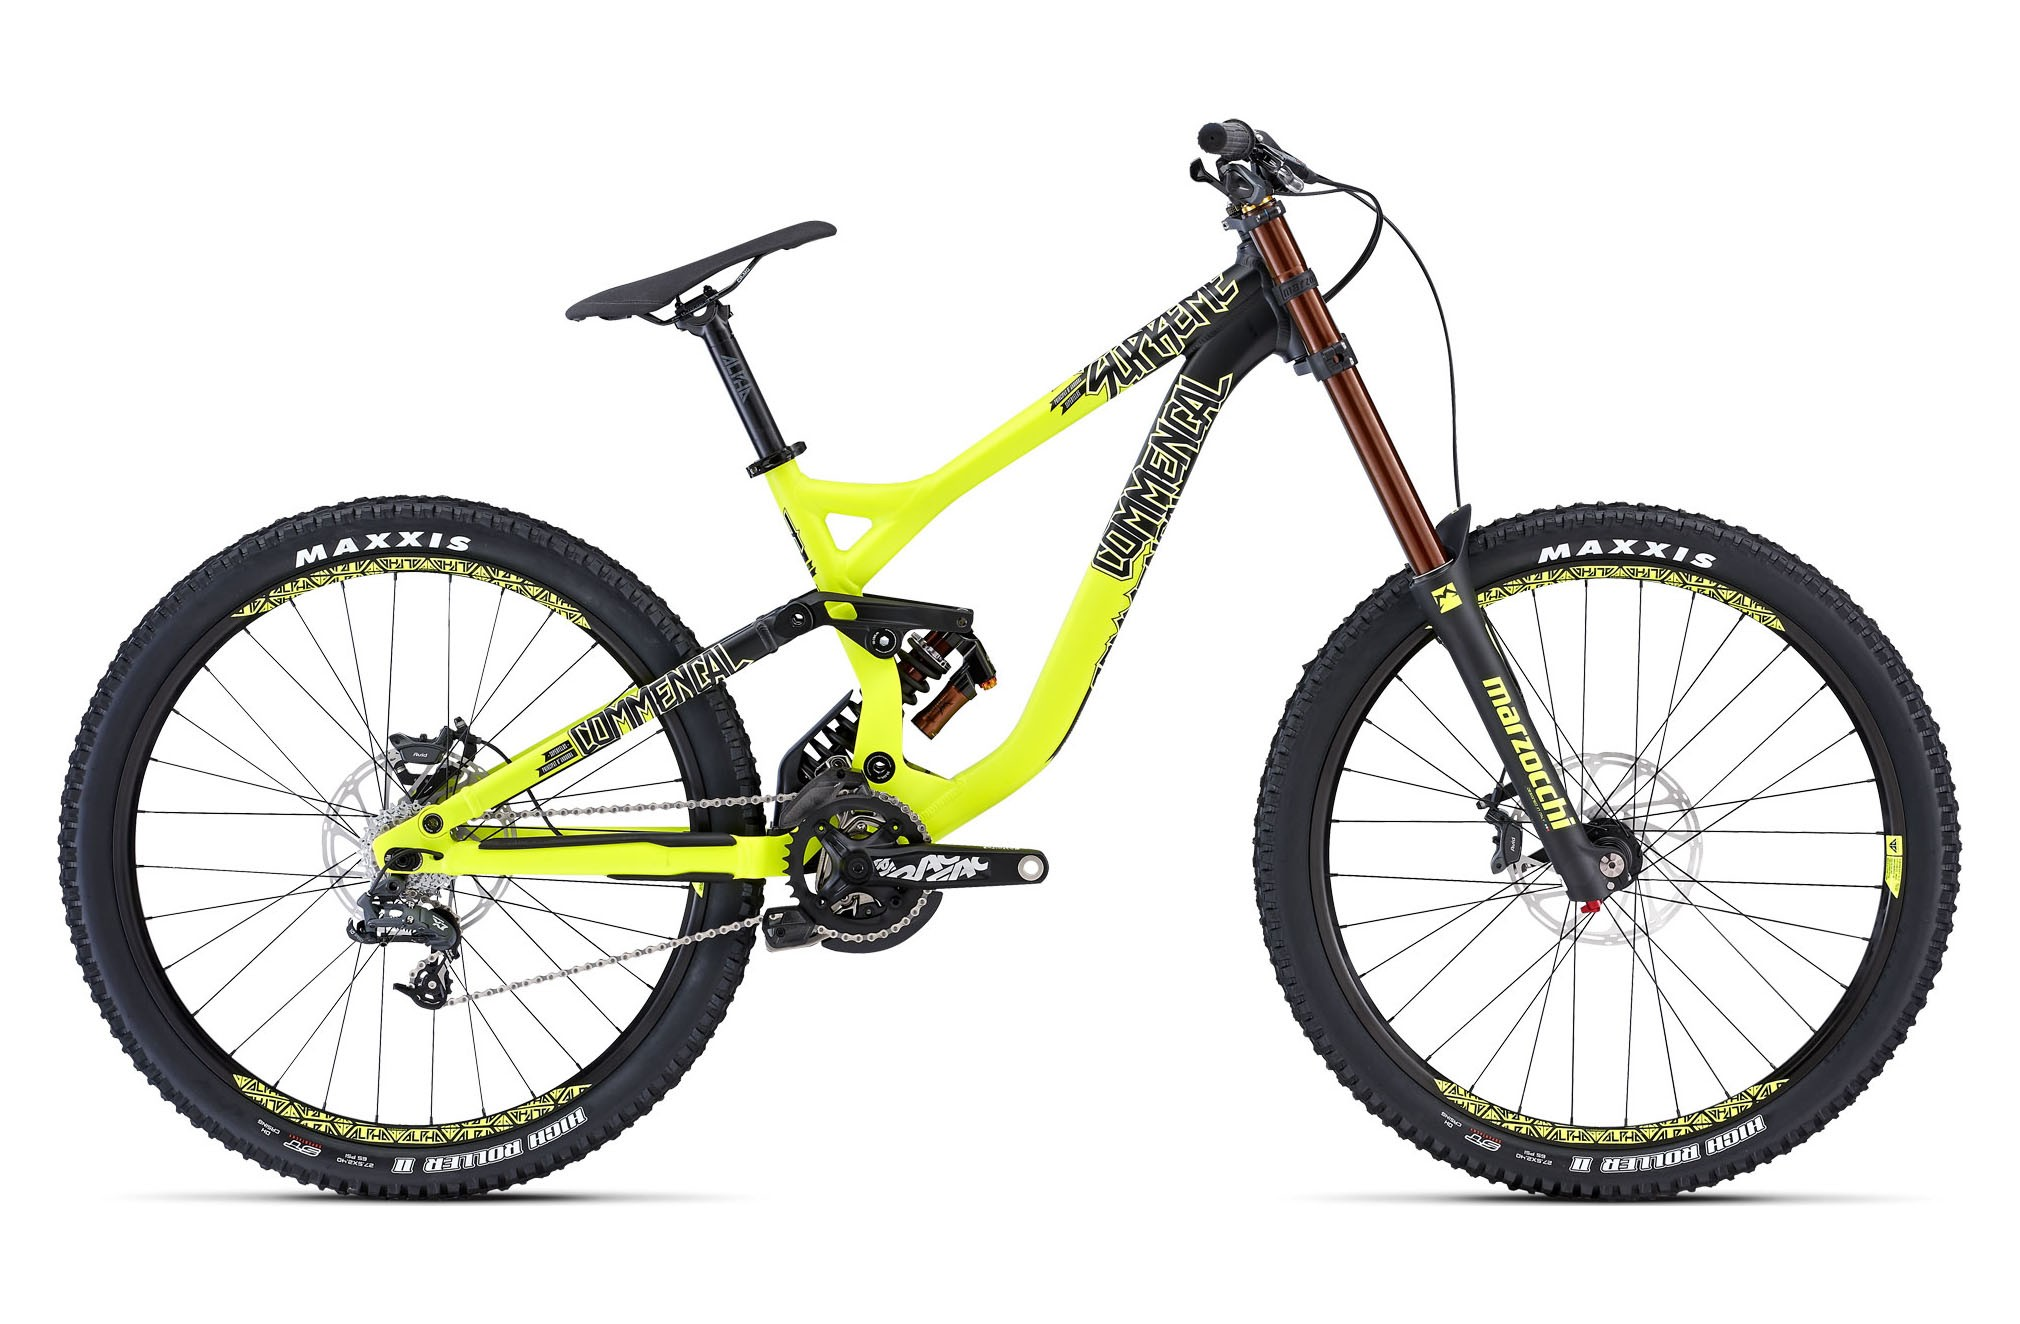 Горный велосипед Commencal Supreme DH Origin 650b (2015)